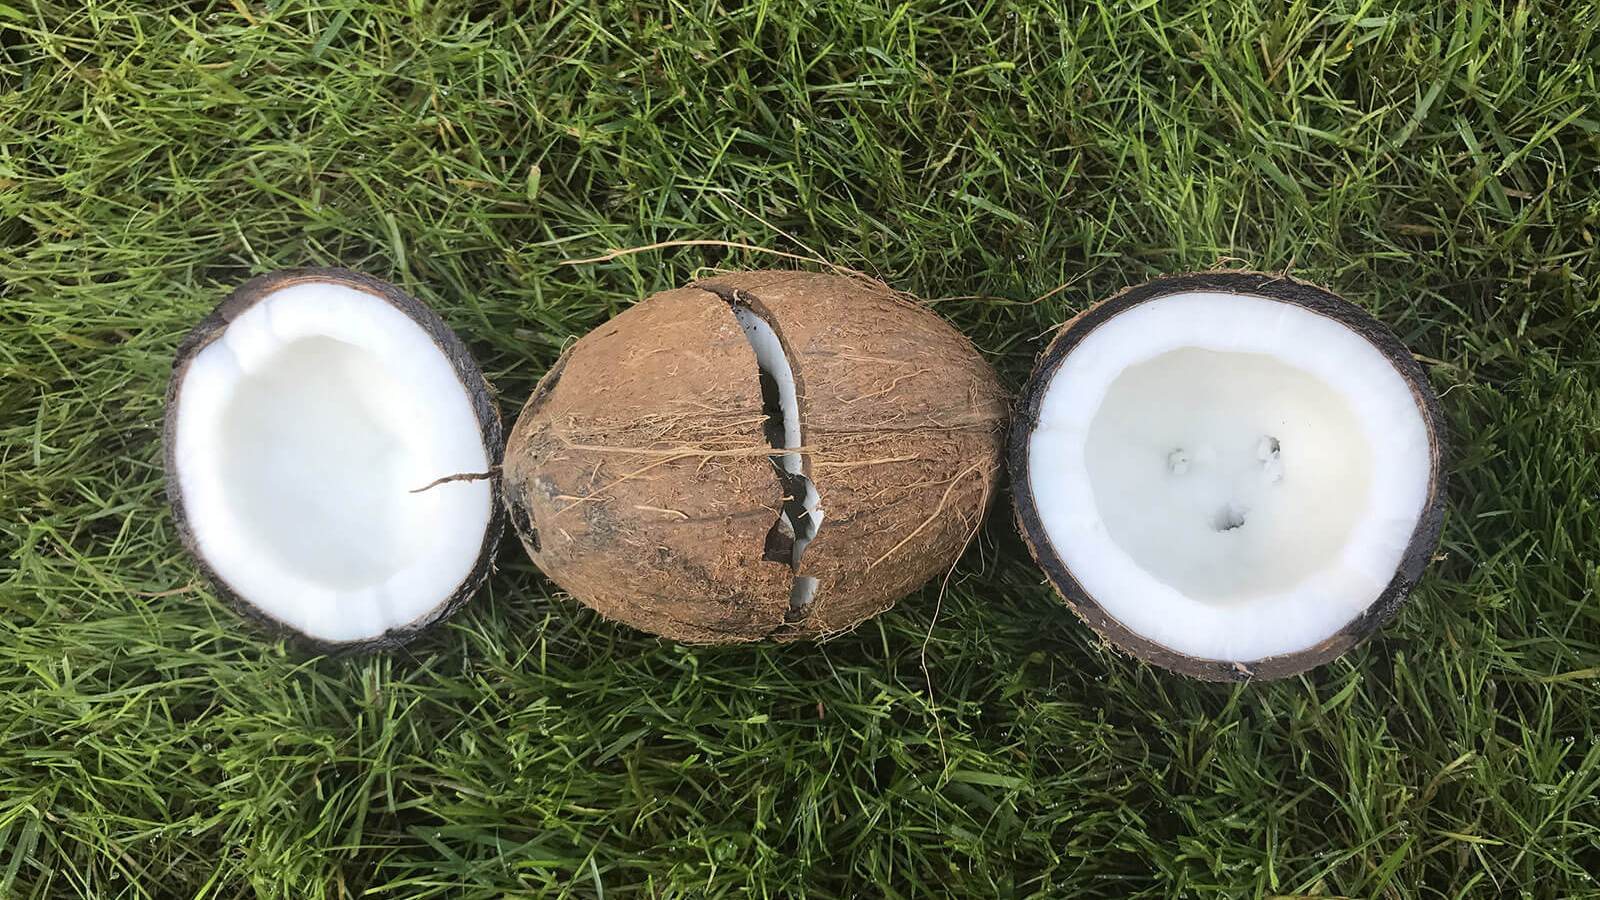 How to open a coconut? – advice for men and women